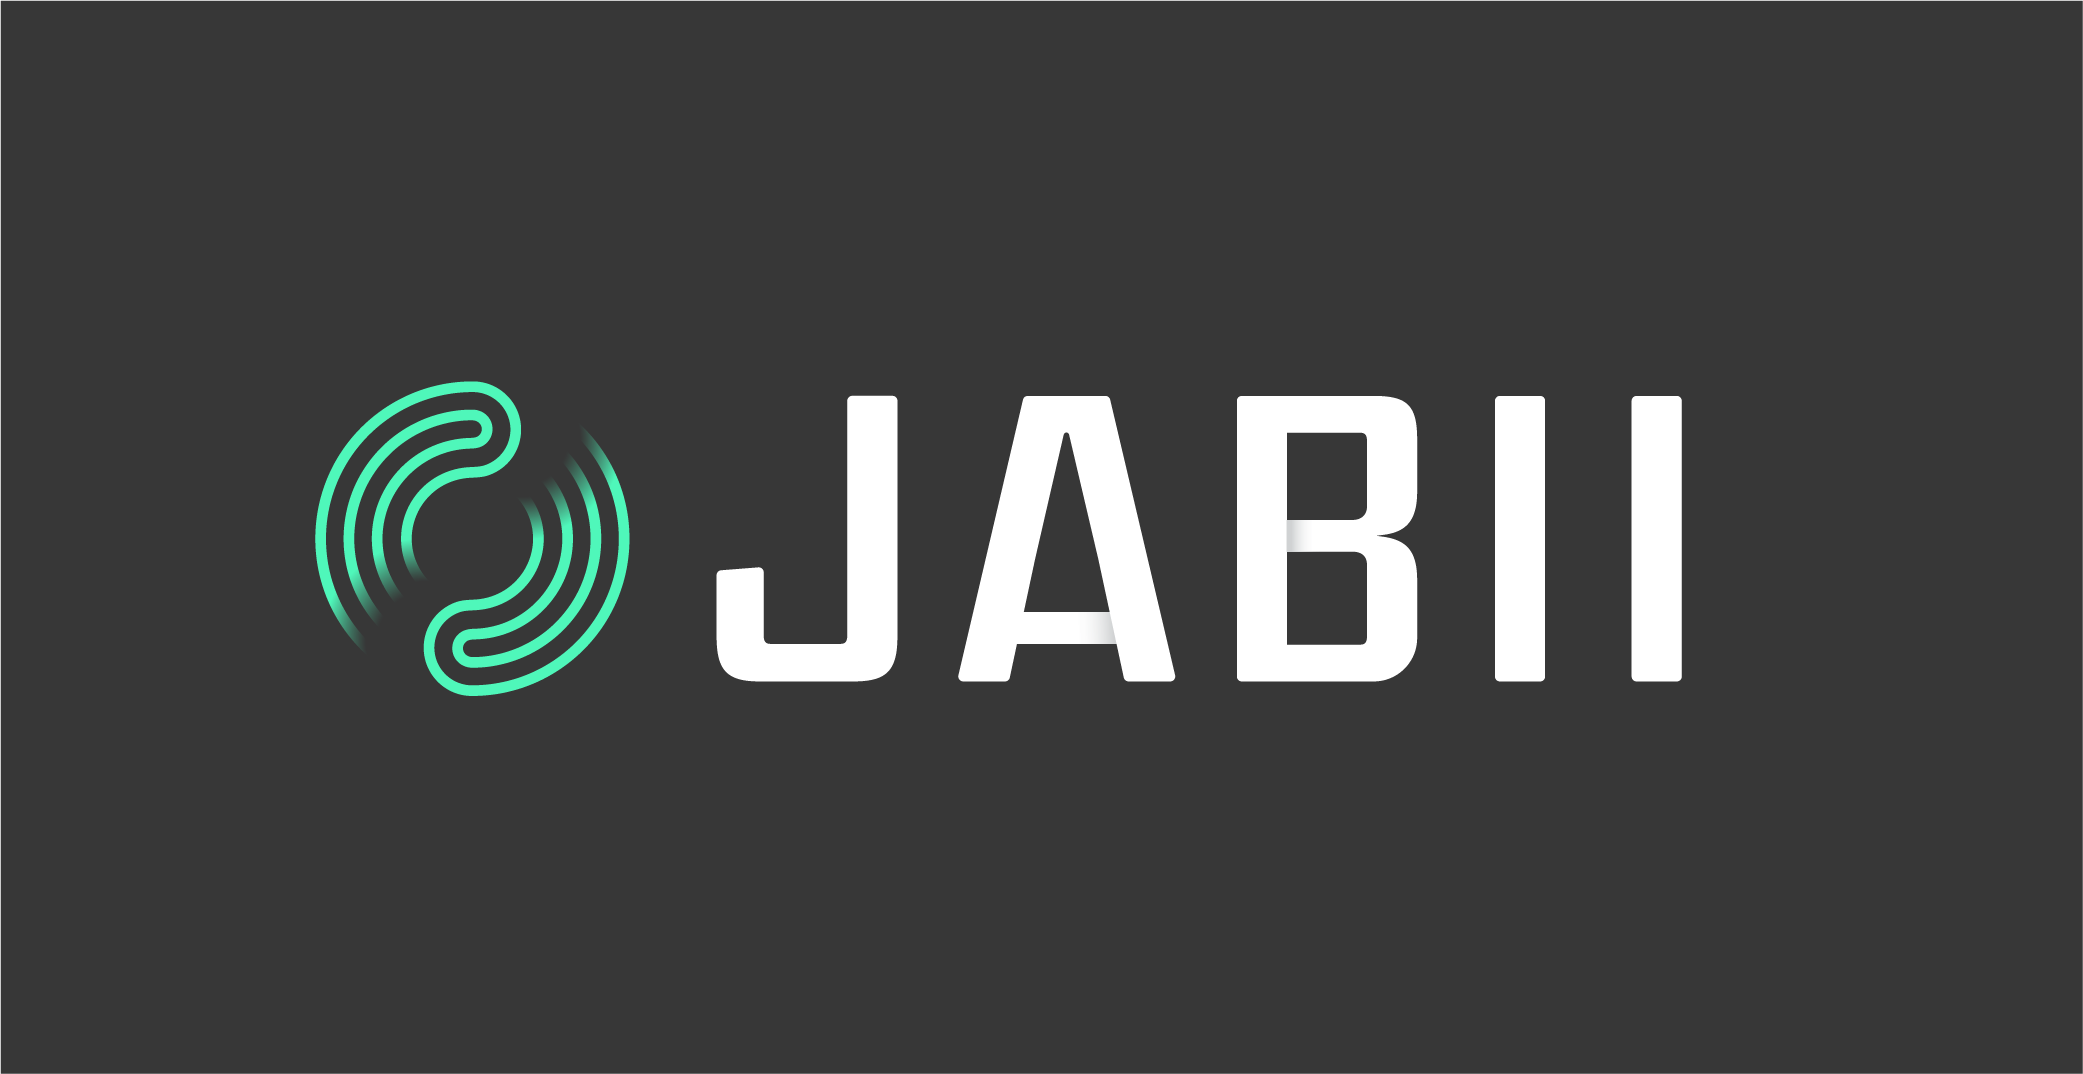 Danish Game Sttudio JABII Launches The First Ever Full Contact Gaming Concept On Indiegogo